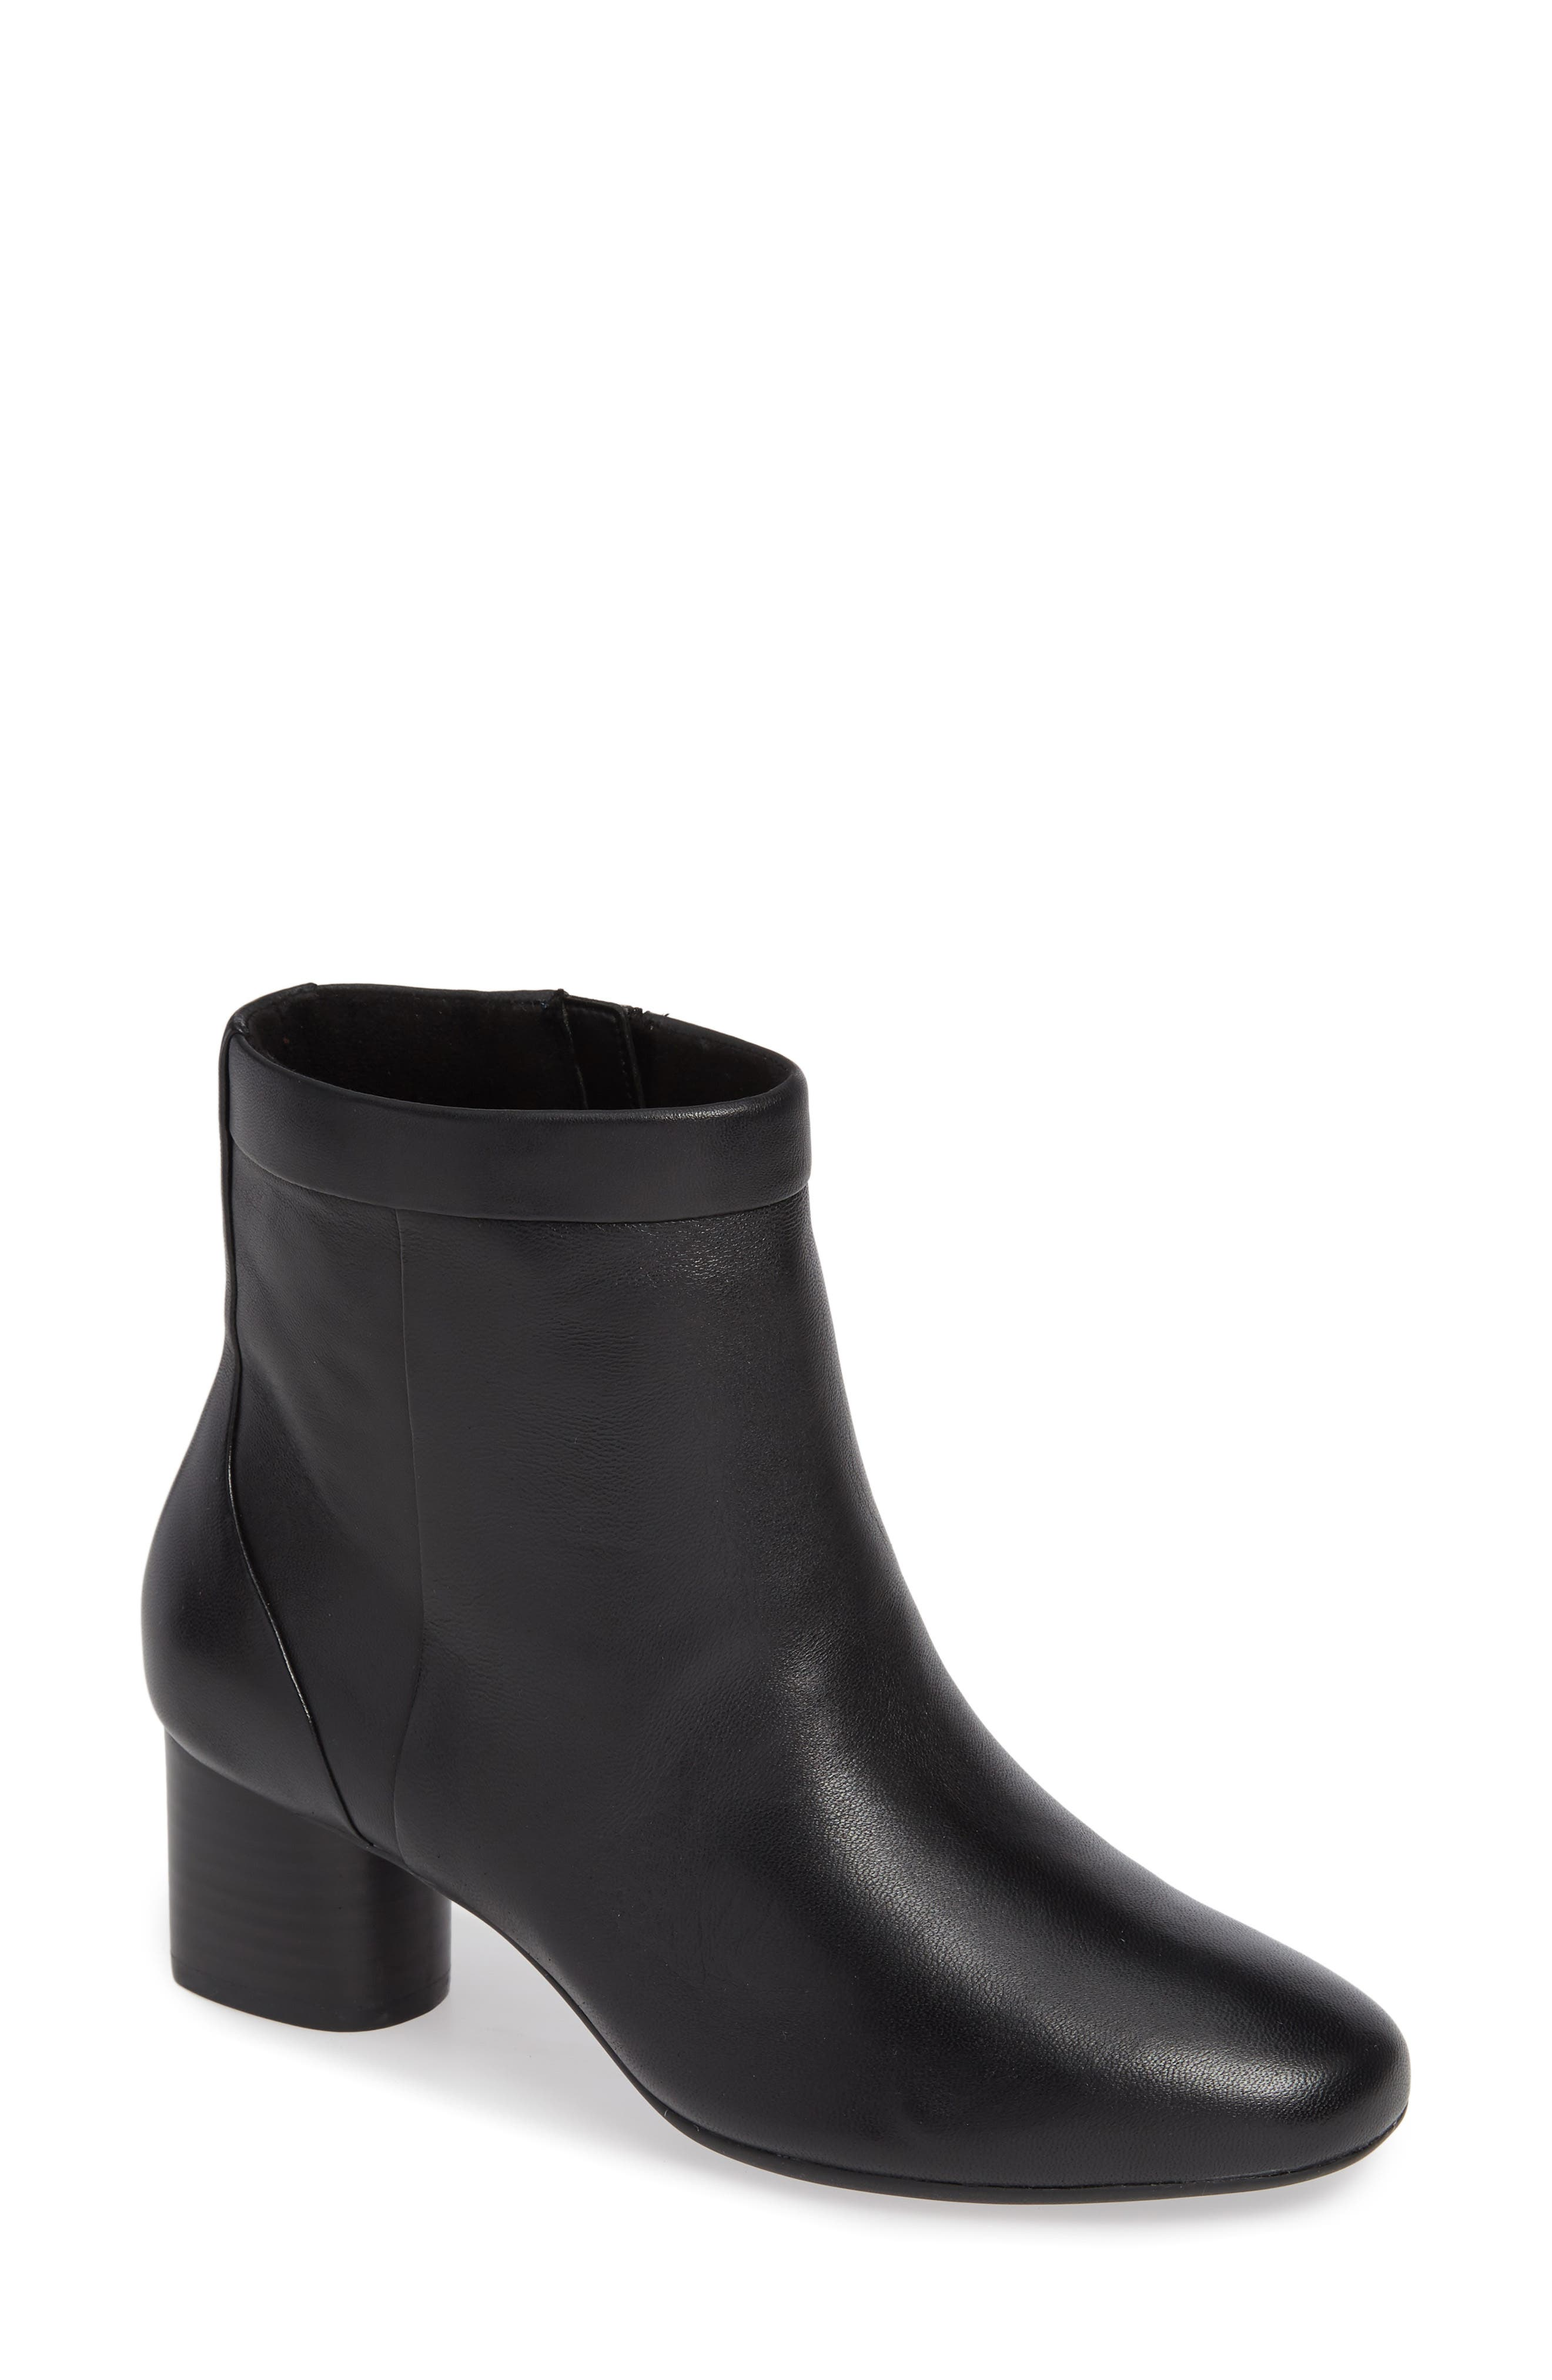 CLARKS<SUP>®</SUP>, Un Cosmo Up Bootie, Main thumbnail 1, color, BLACK LEATHER